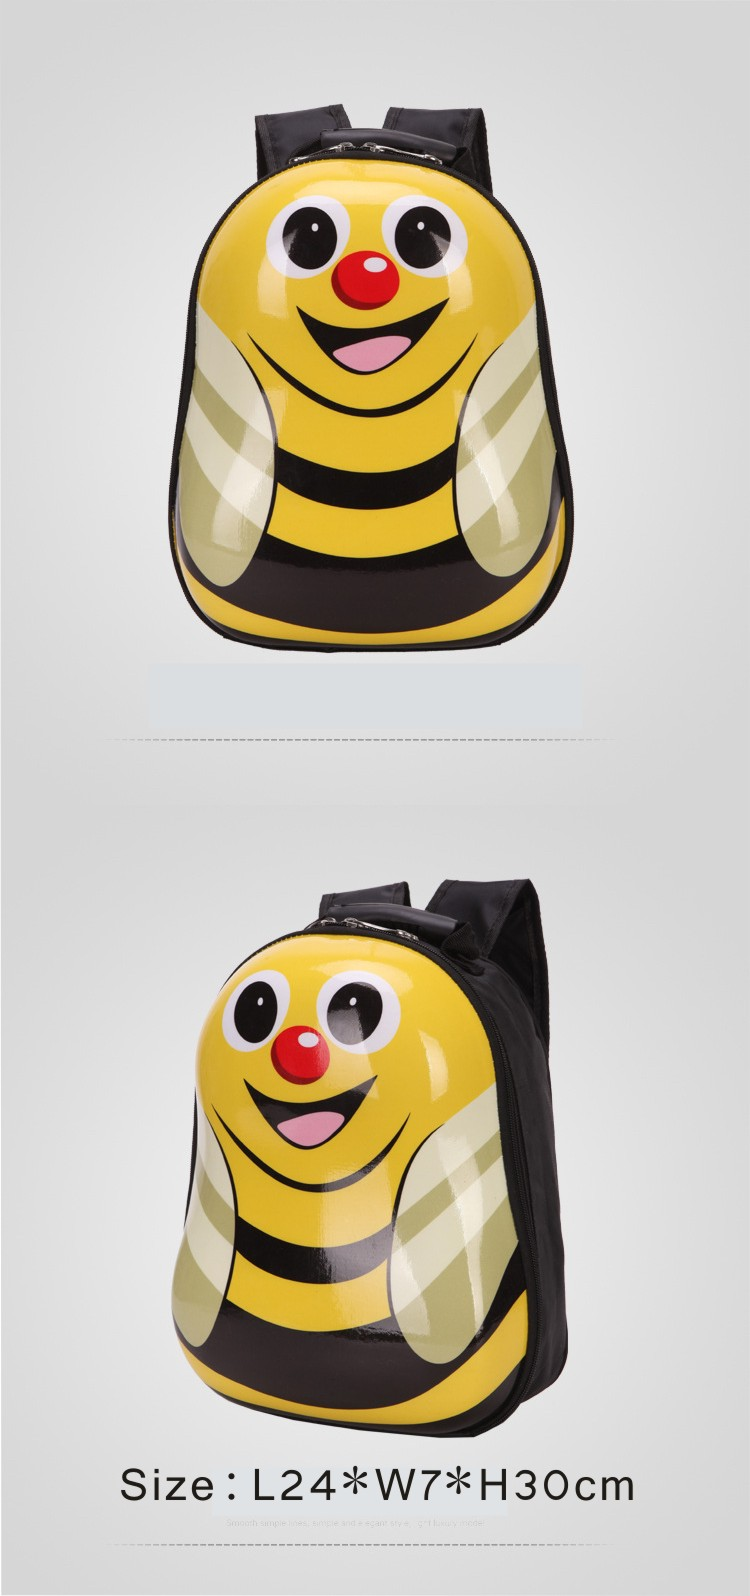 2019 Many Patterns PC Hardshell Kids Comic And Animation Backpack School Bag, Cartoon Kids School Bag